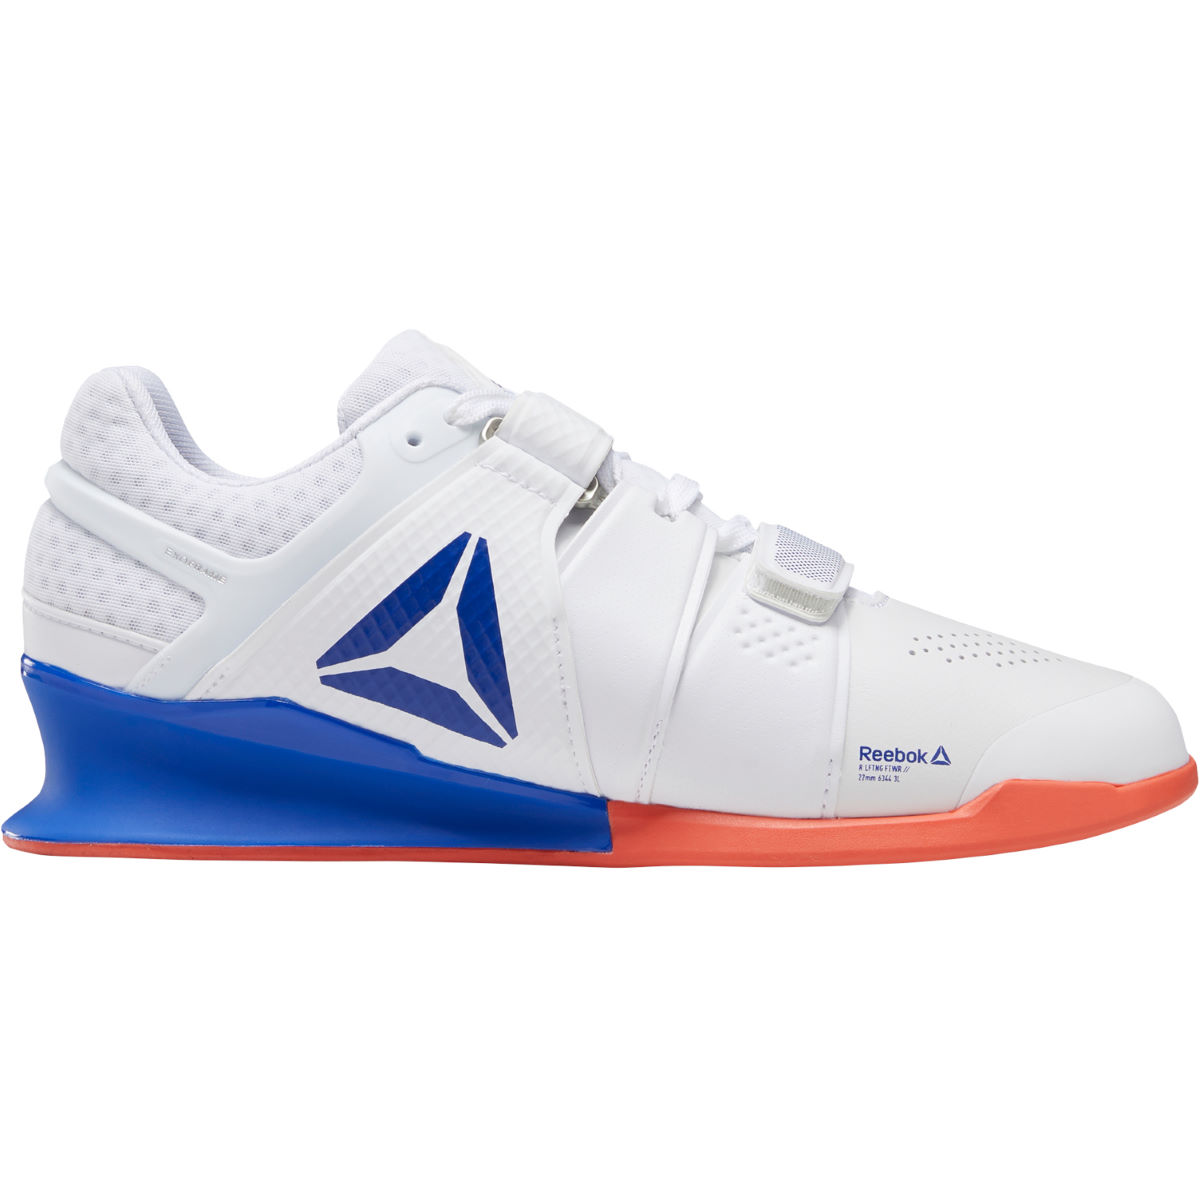 Reebok Reebok Legacy Lifter Gym Shoe   Weight Training Shoes